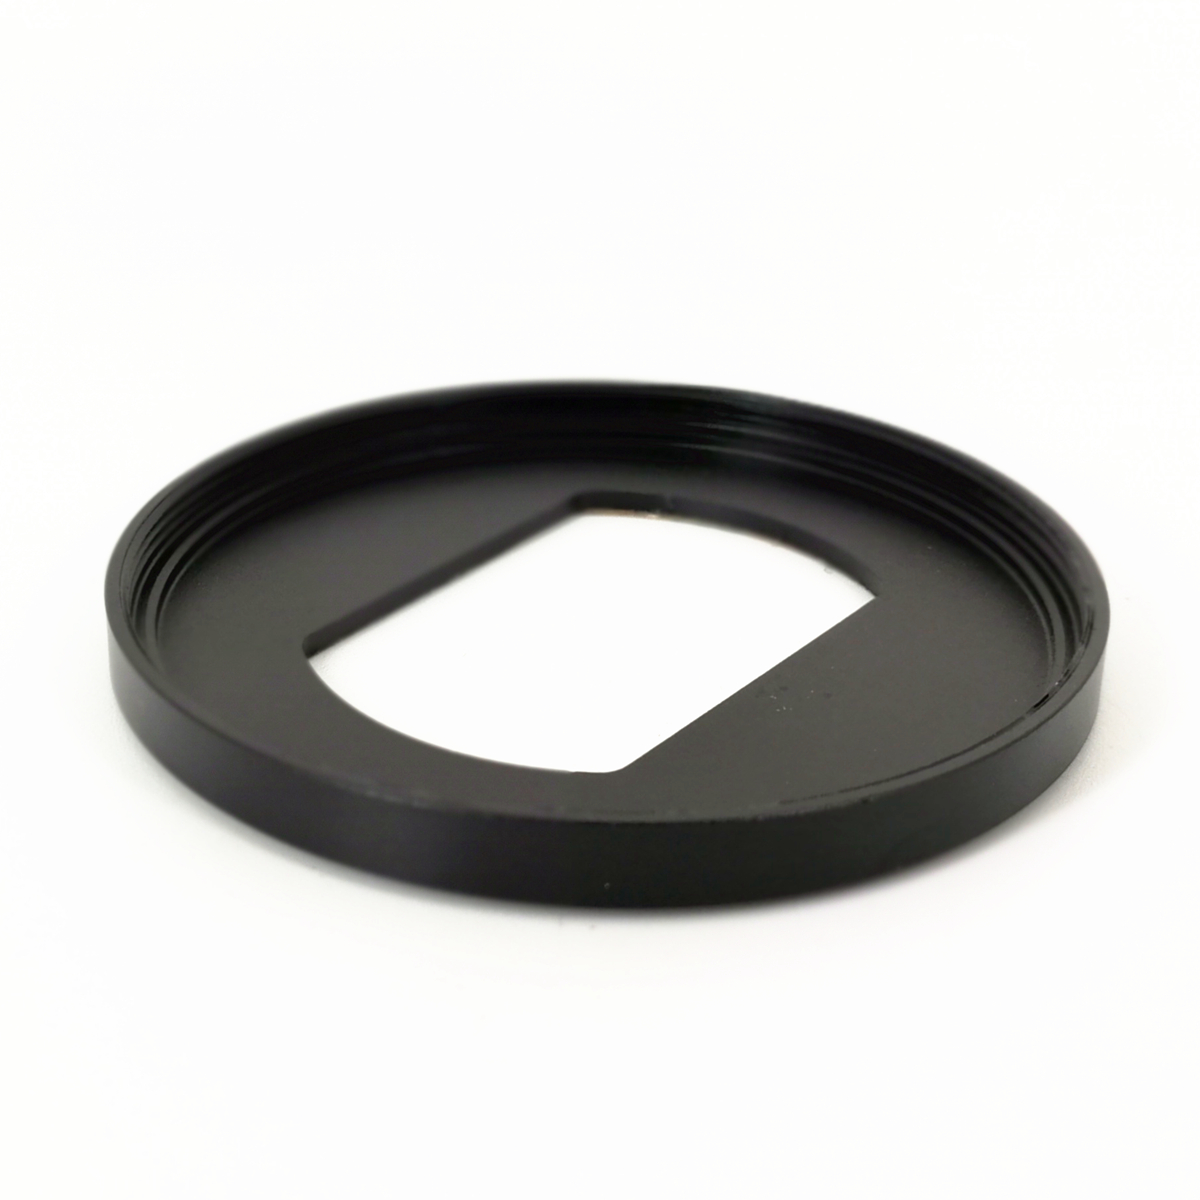 Image 3 - 52mm Metal Filter Adapter Ring + Sticker for Sony RX100M5 / RX100M6 / RX100 V RX100V / RX100 VI RX100VI replace RN RX100VI-in Lens Adapter from Consumer Electronics